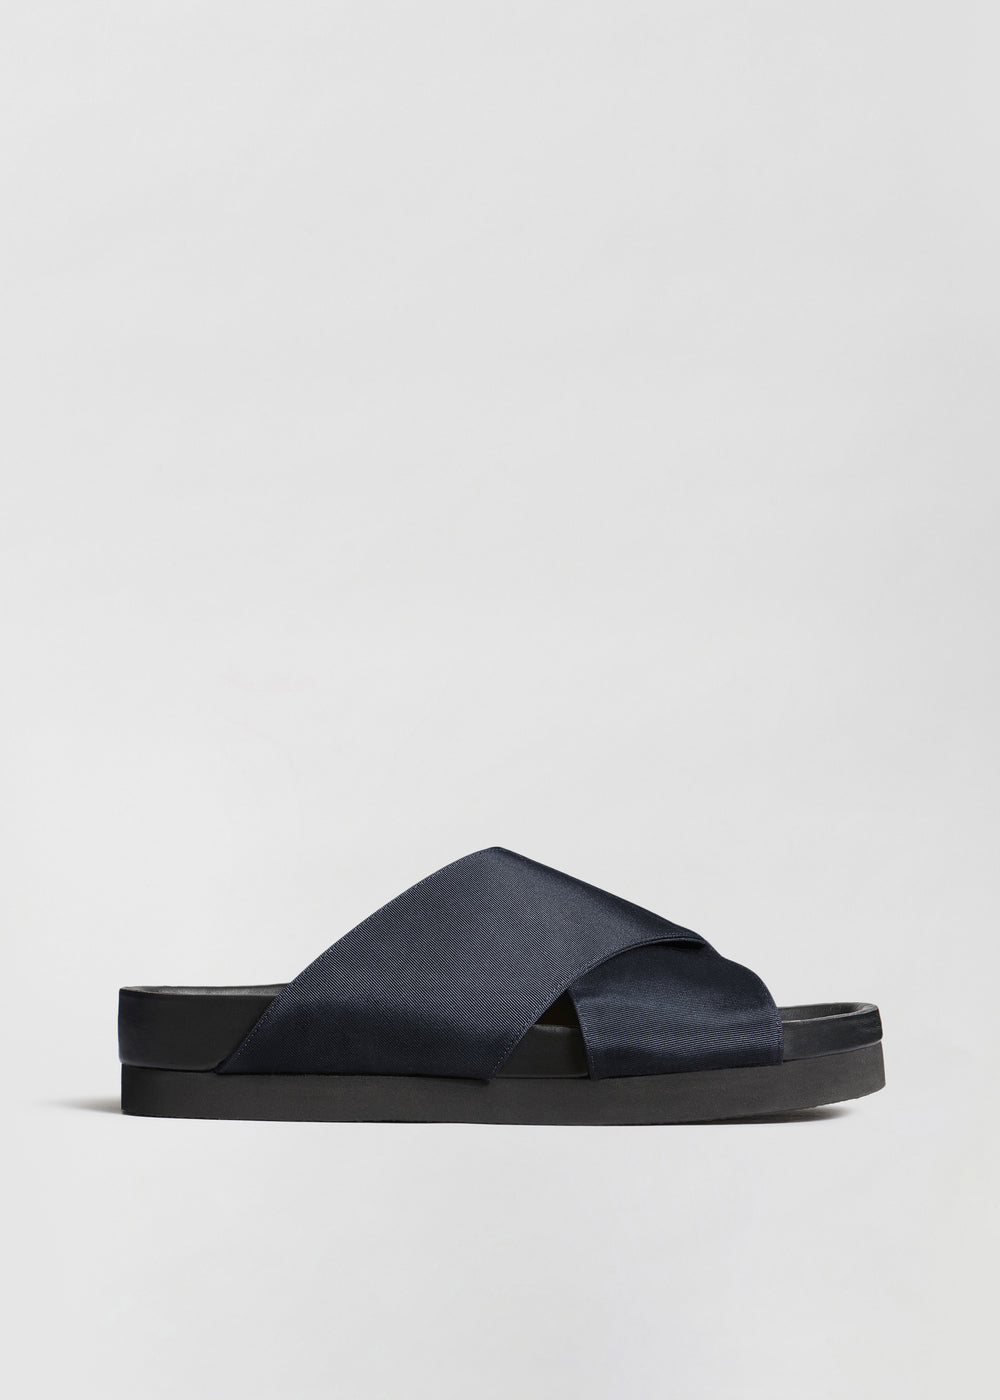 Slide Sandal in Grosgrain - Navy - CO Collections